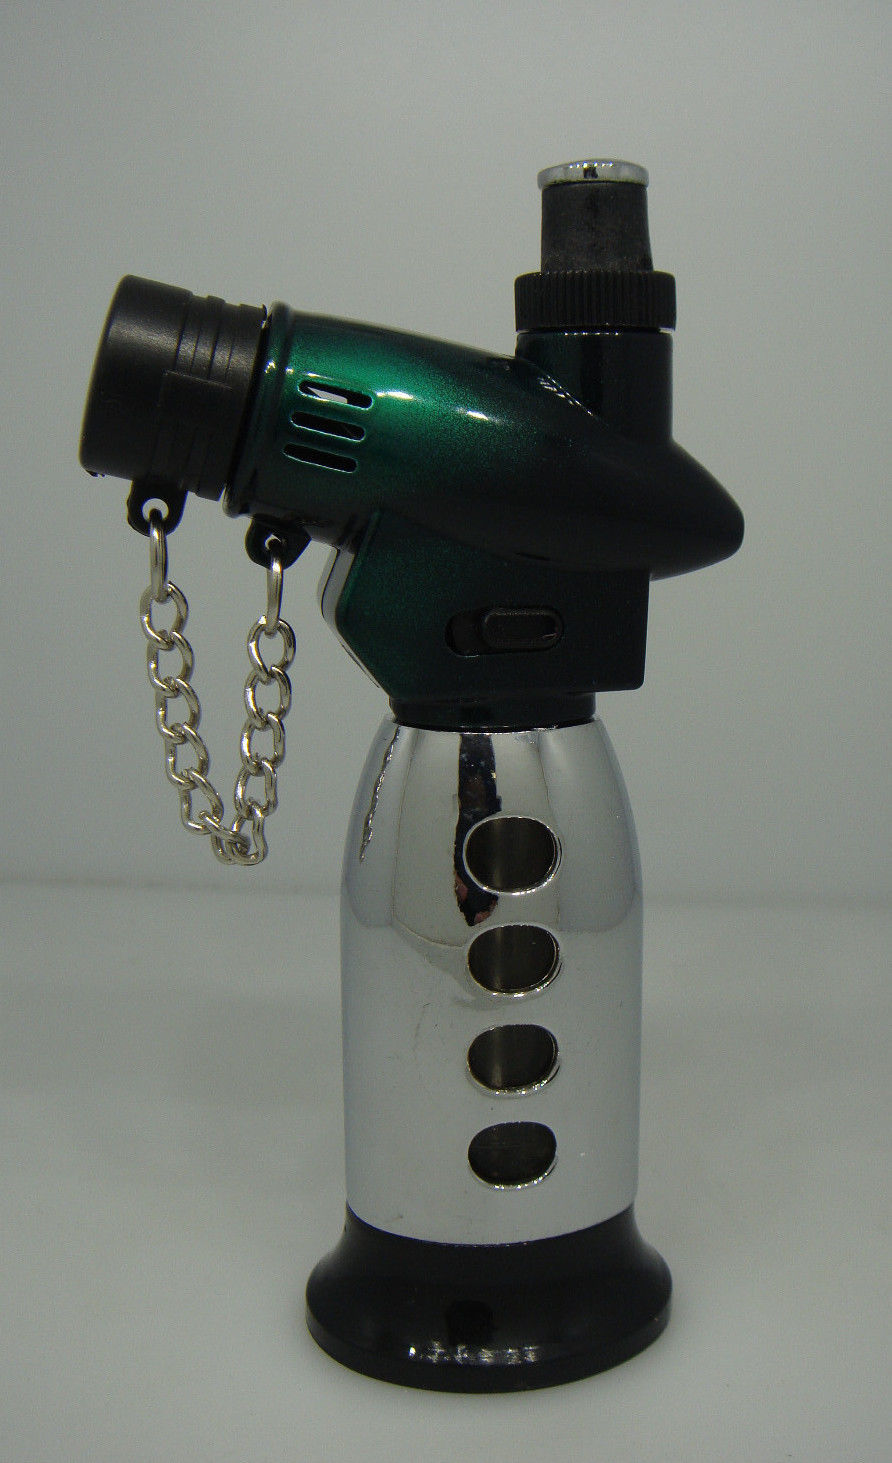 SINGLE TORCH LIGHTER JET FLAME / REGULAR FLAME GREEN AND SILVER 98-945